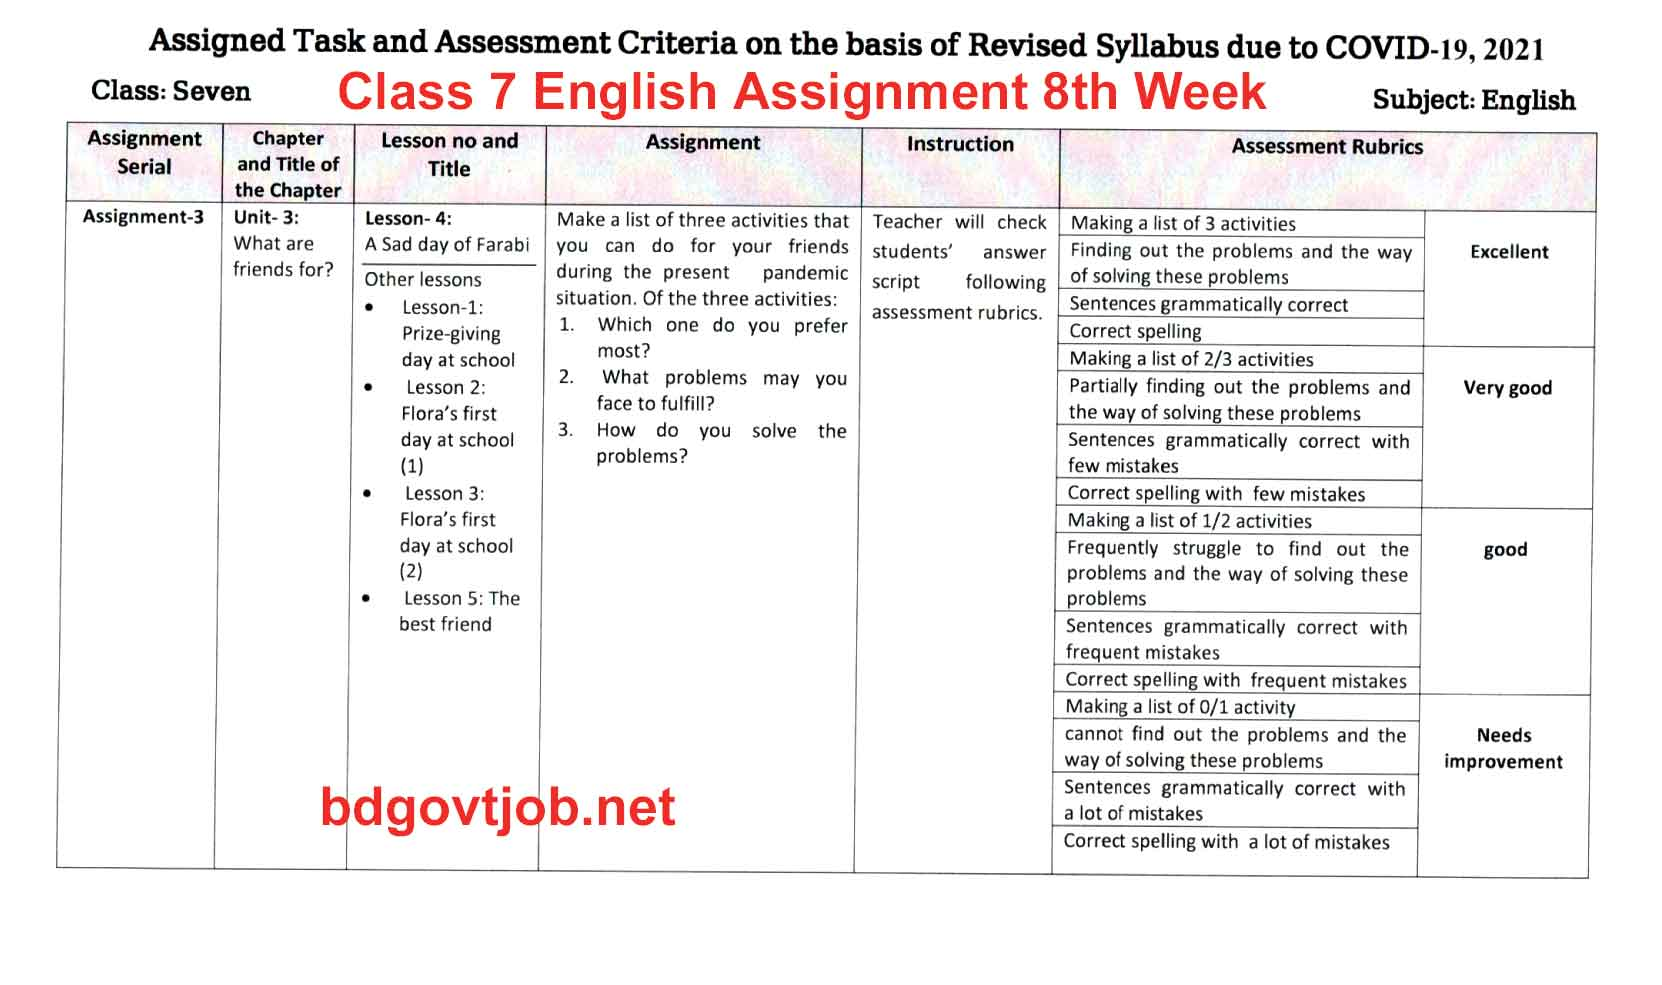 Class 7 English Assignment 8th week